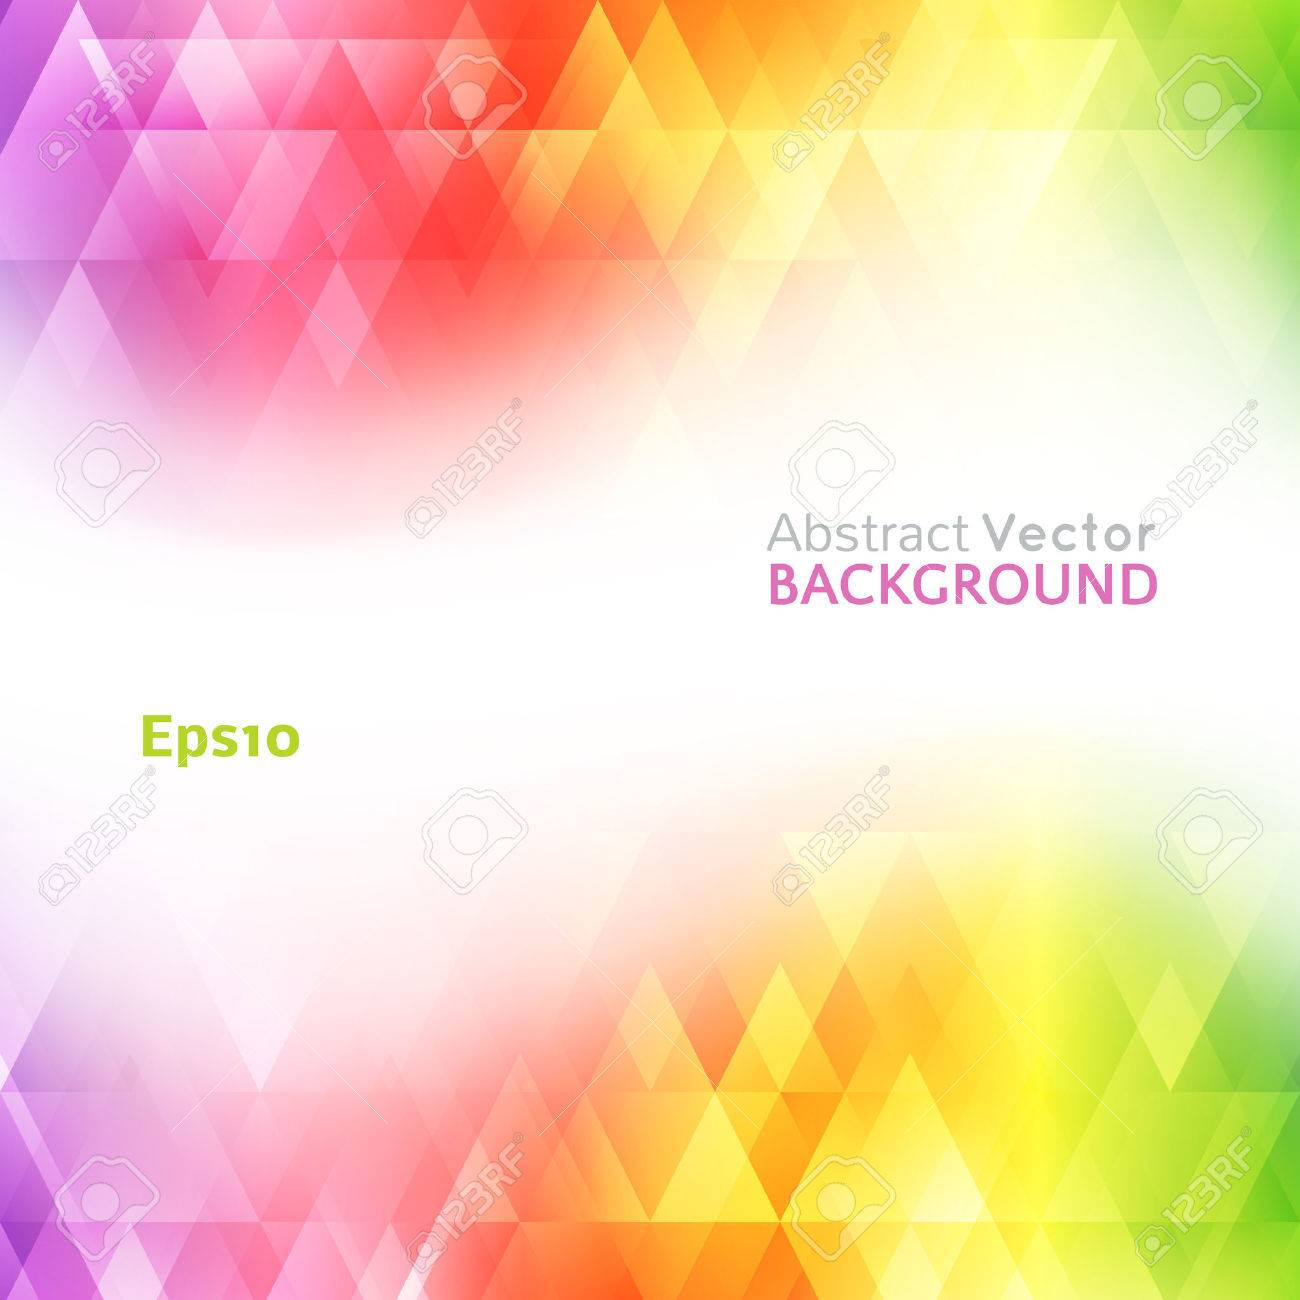 Abstract Bright Background Vector Illustration For Modern Design